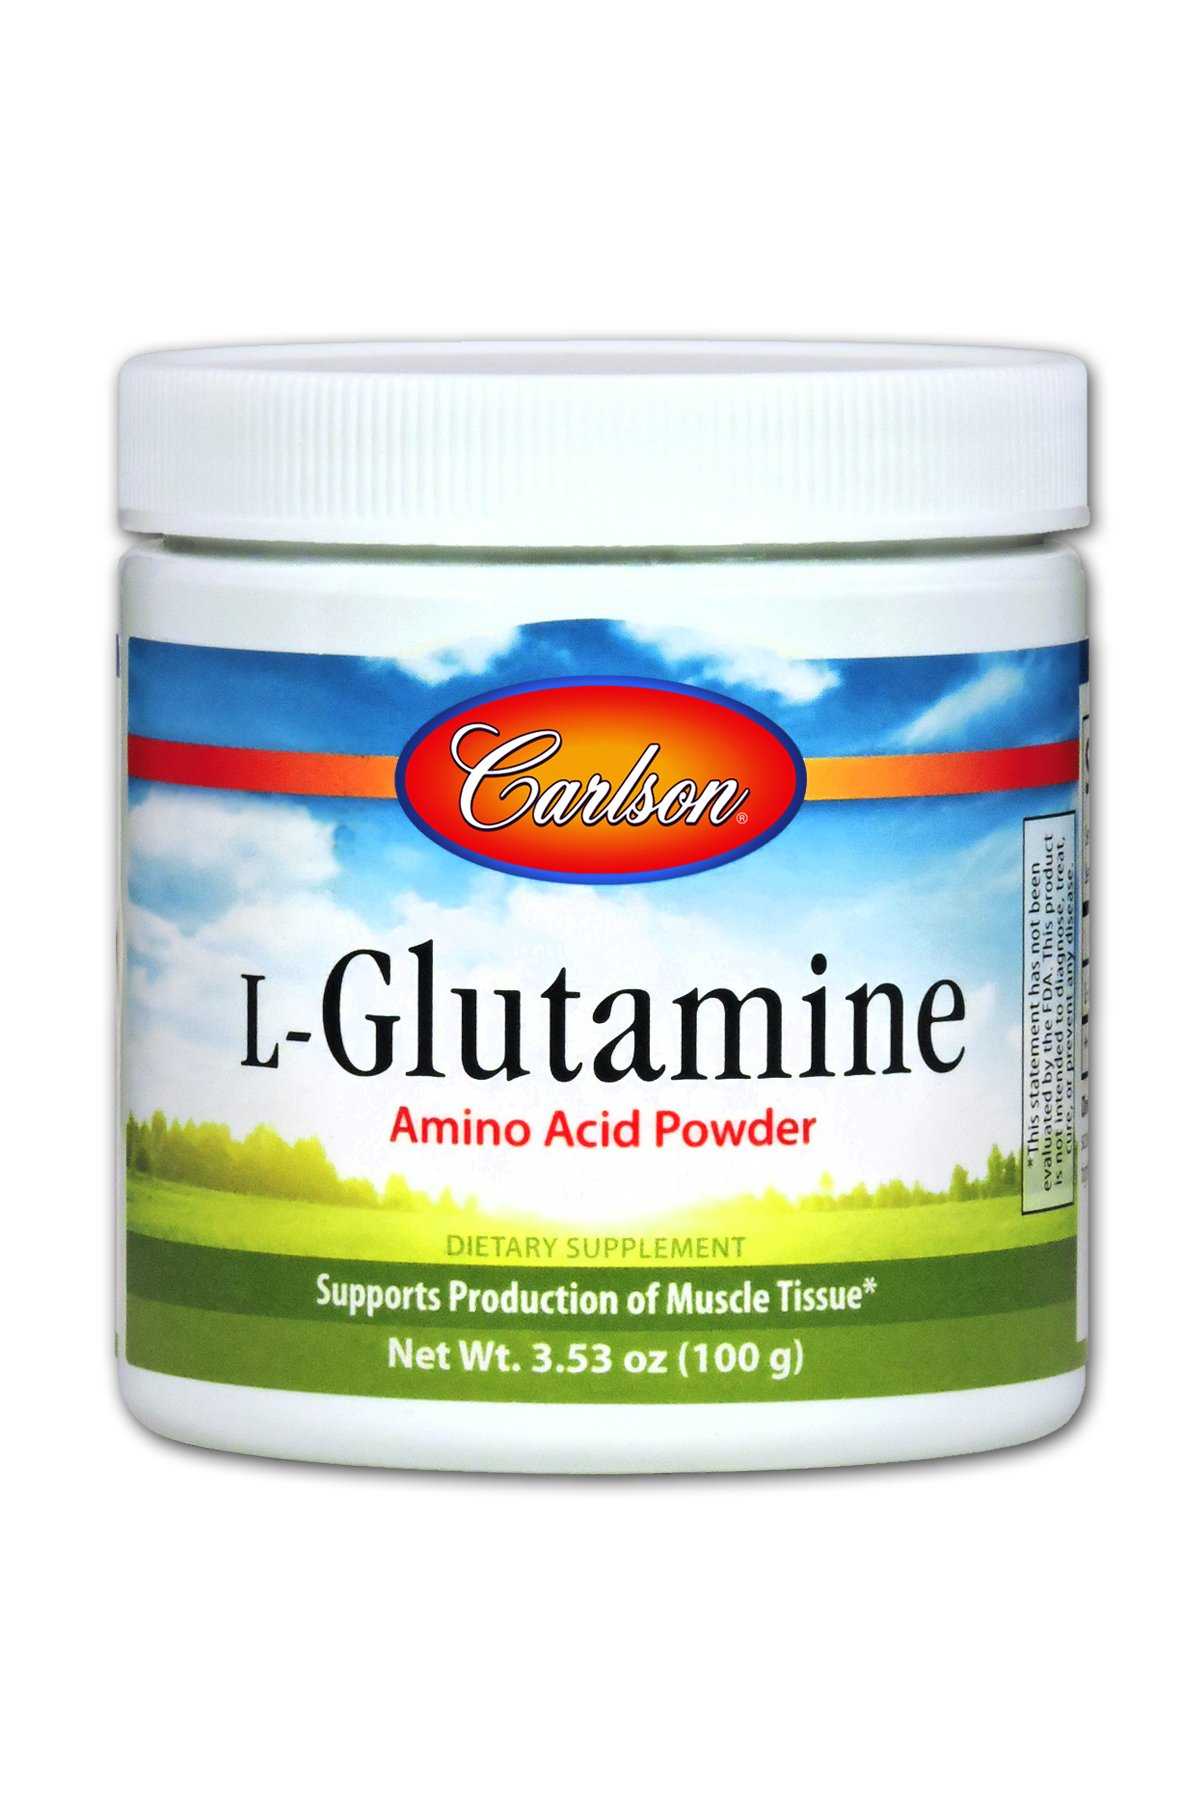 Carlson L-Glutamine Powder 3 g, Amino Acid Powder, 100 g Jar